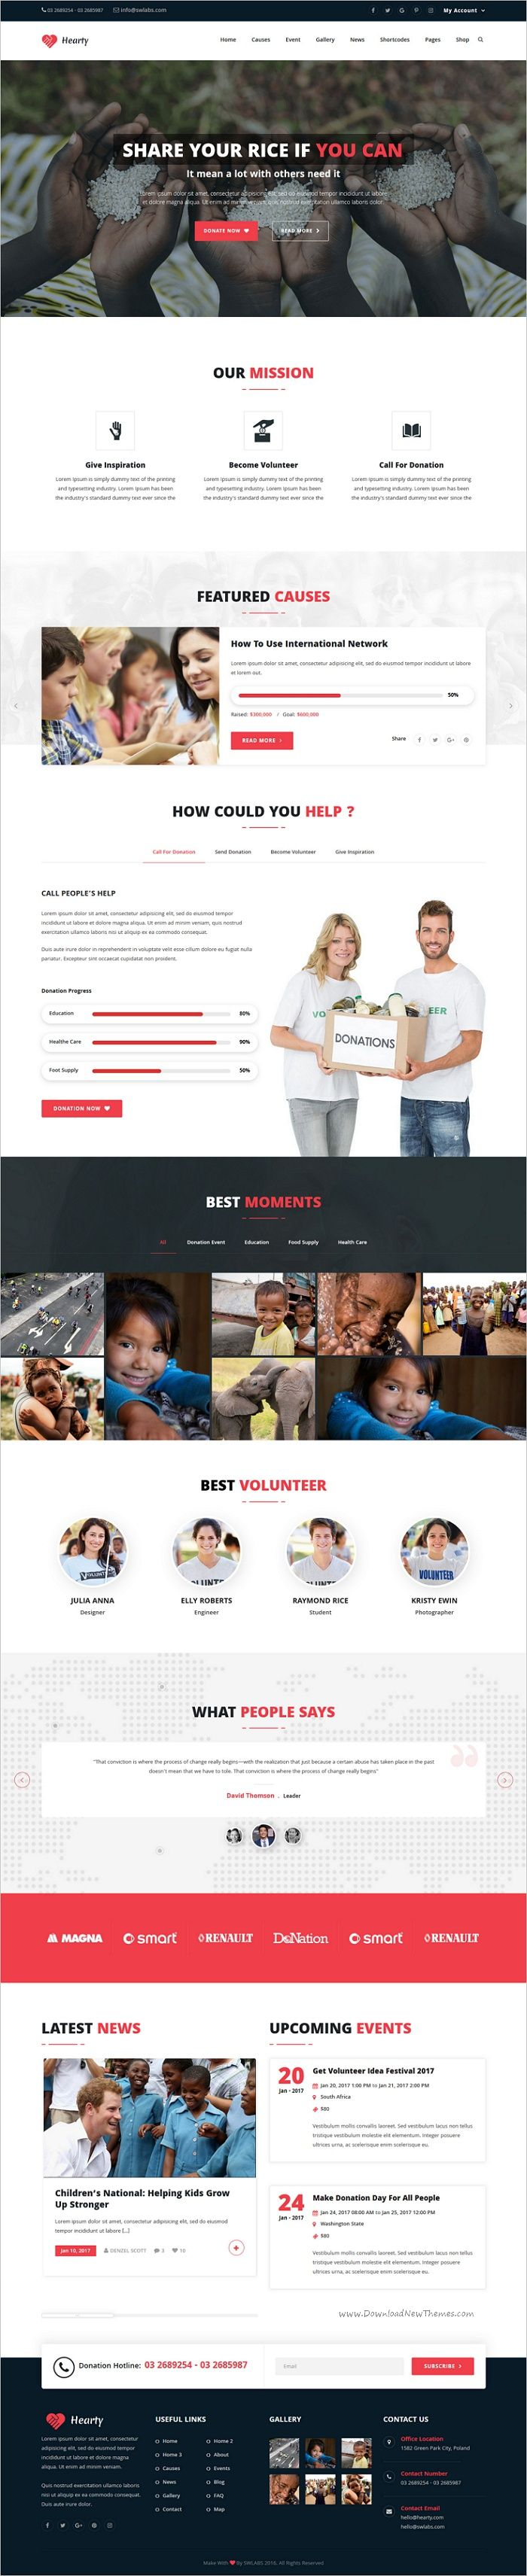 Hearty is a multiconcept responsive 4in1 #WordPress Theme especially for Charity, #NGO, non-profit organization or #foundation, campaign & event donation, religion or a fundraising website download now➩ https://themeforest.net/item/hearty-charity-nonprofit-fundraising-wordpress-theme/19226510?ref=Datasata